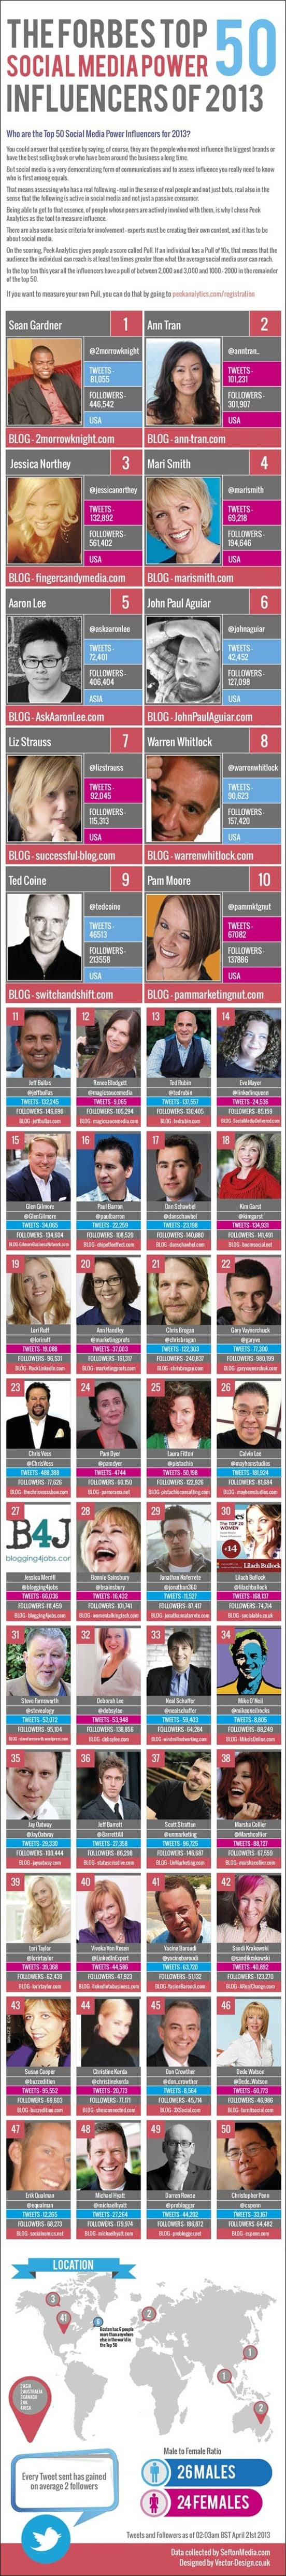 top-50-en-redes-sociales-2013-by-forbes